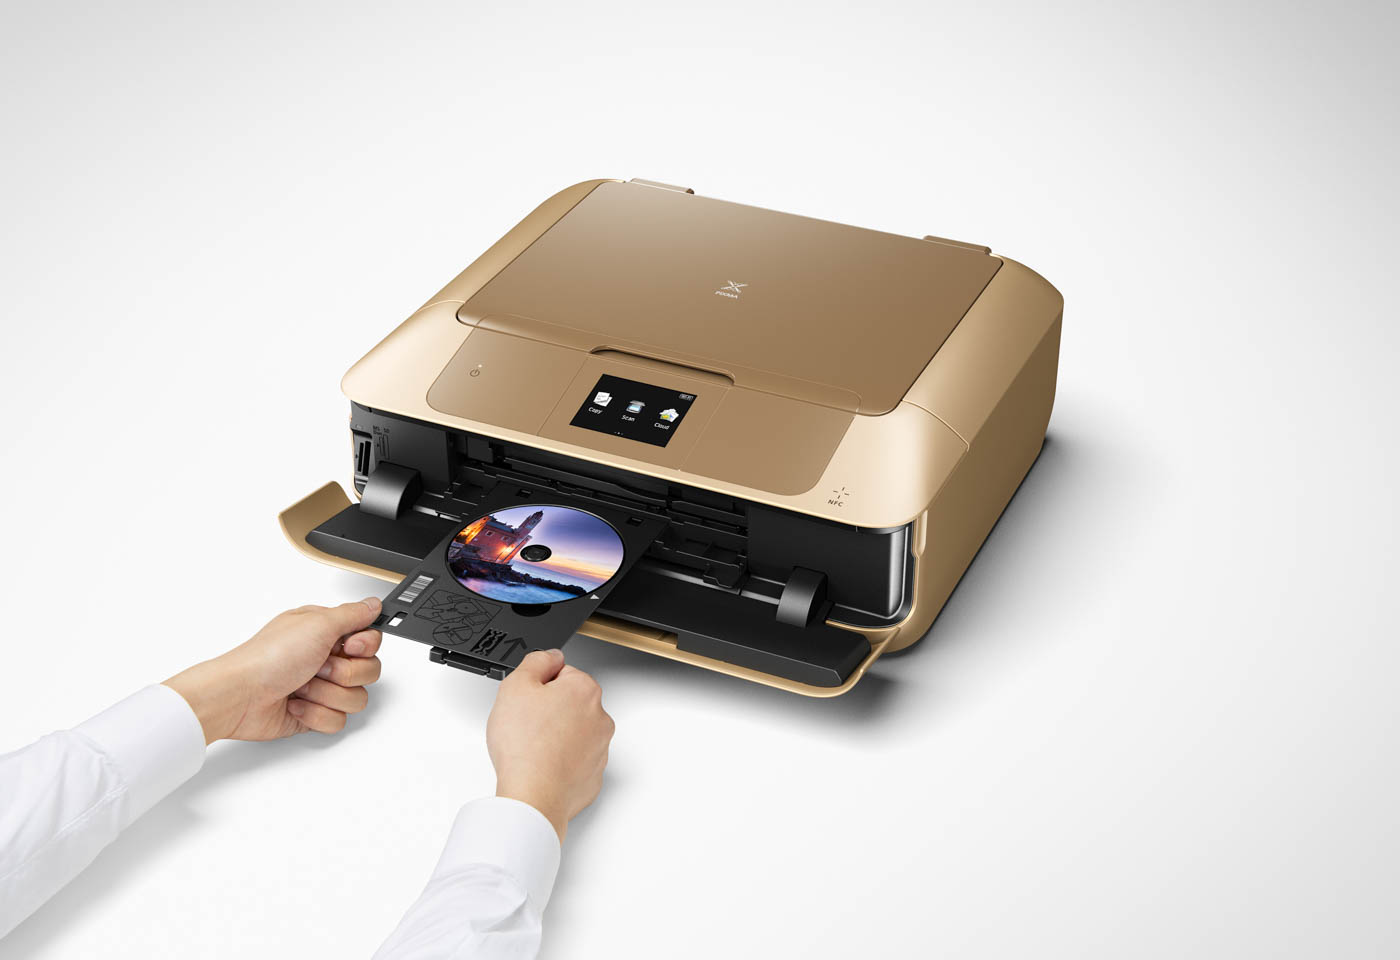 Canon PIXMA Gold MG7766 printer with CD